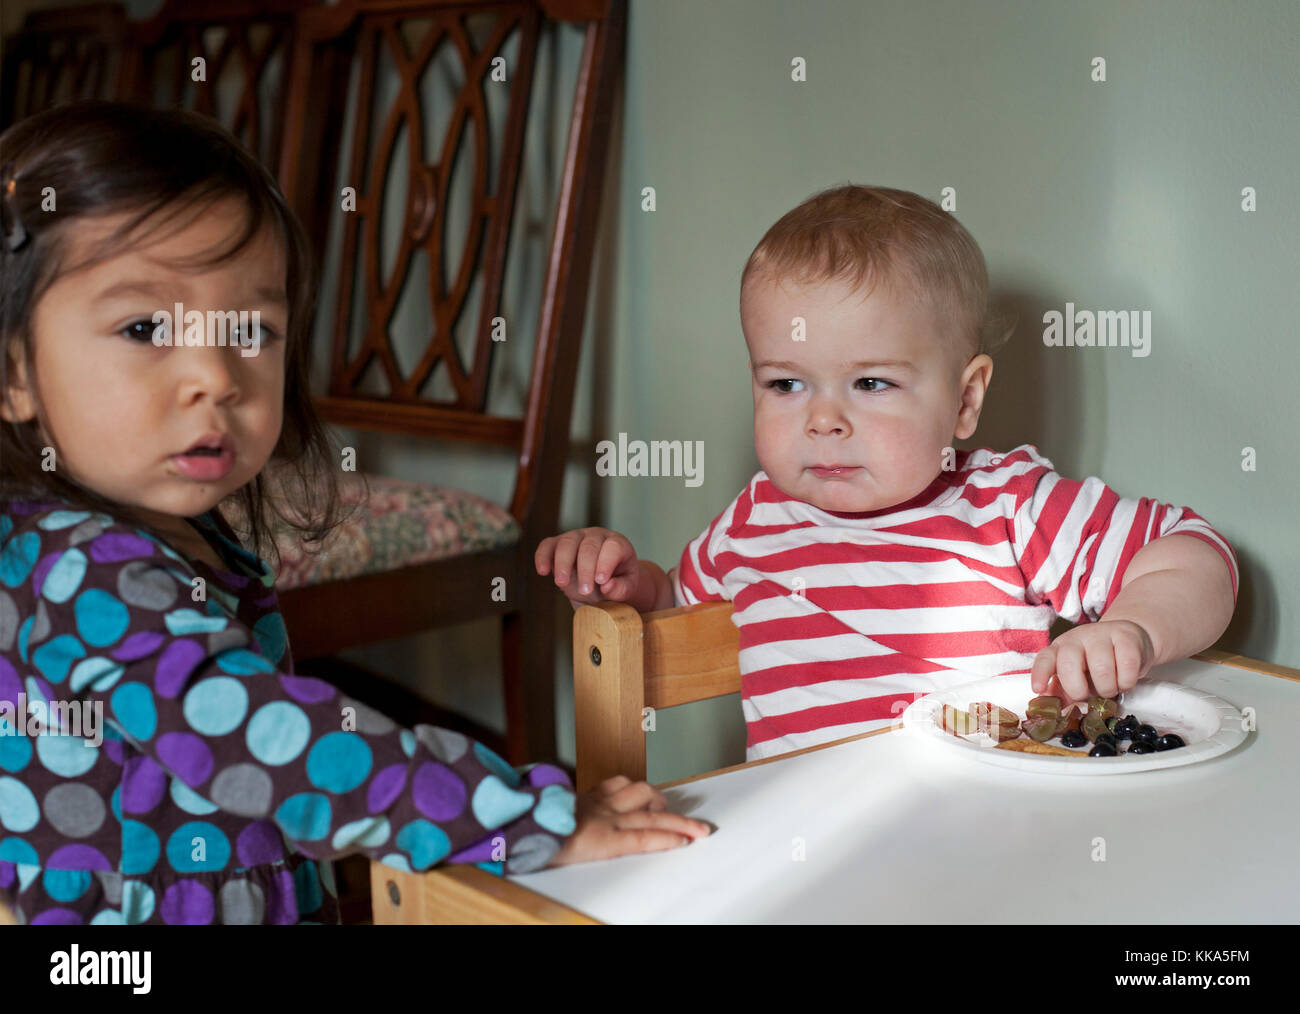 A young boy gives his friend a look when he thinks she may take his food. - Stock Image